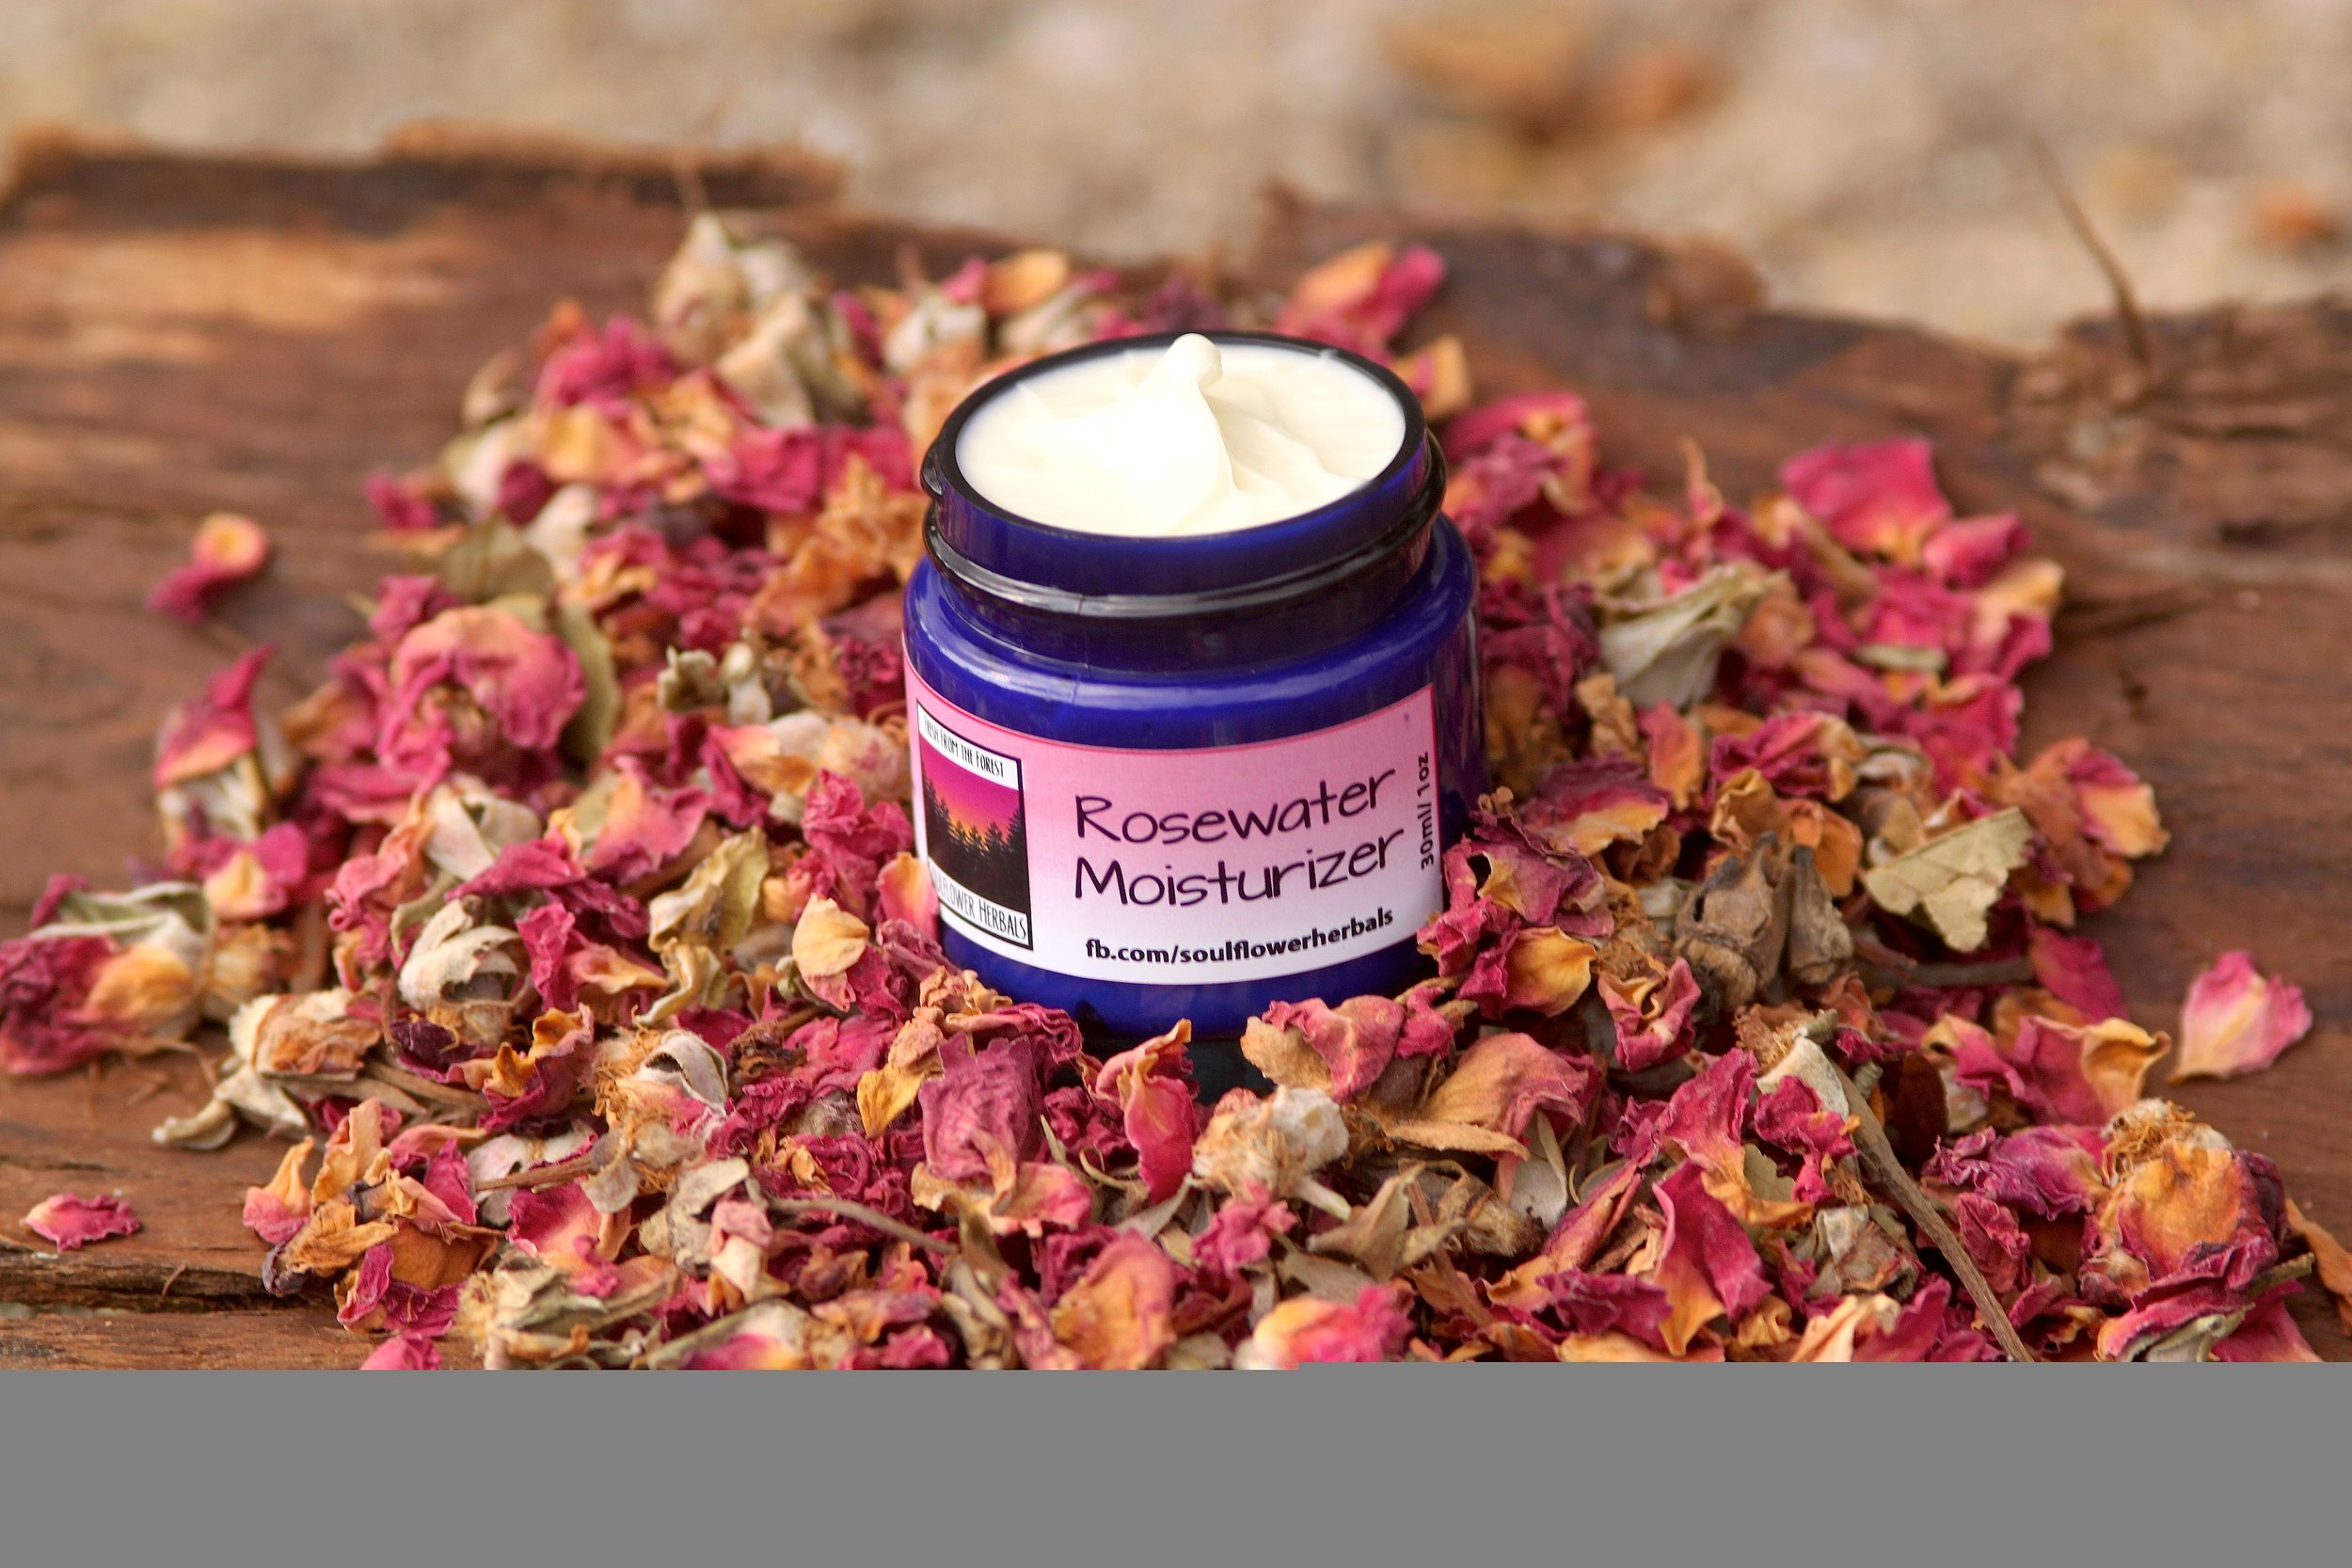 Soul FlowerRosewater Moisturizer - Rosewater Moisturizer is our unique and most popular moisturizer made using pure rosewater and Extra Virgin Olive Oil infused with Locally Harvested Rose Petals to capture the revitalizing effects of Roses in harmony with the nourishing effects of Extra Virgin Olive Oil. This rich moisturizer is specially formulated for all skin types and will leave your skin feeling nourished and rejuvenvated without feeling greasy.